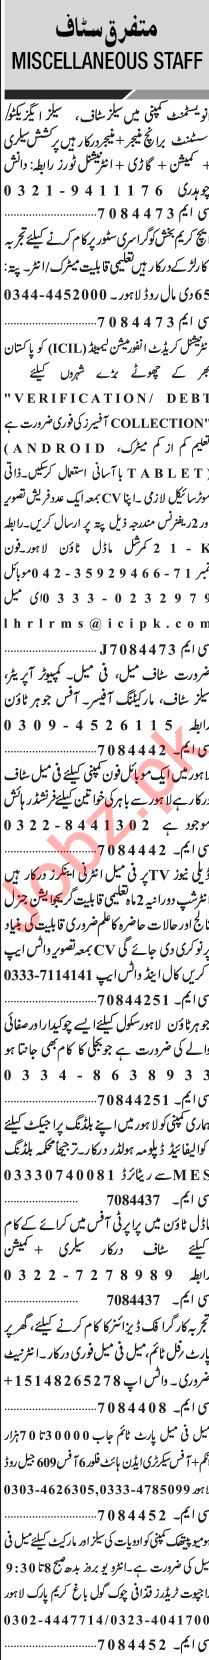 Jang Sunday Classified Ads 26 July 2020 for Multiple Staff